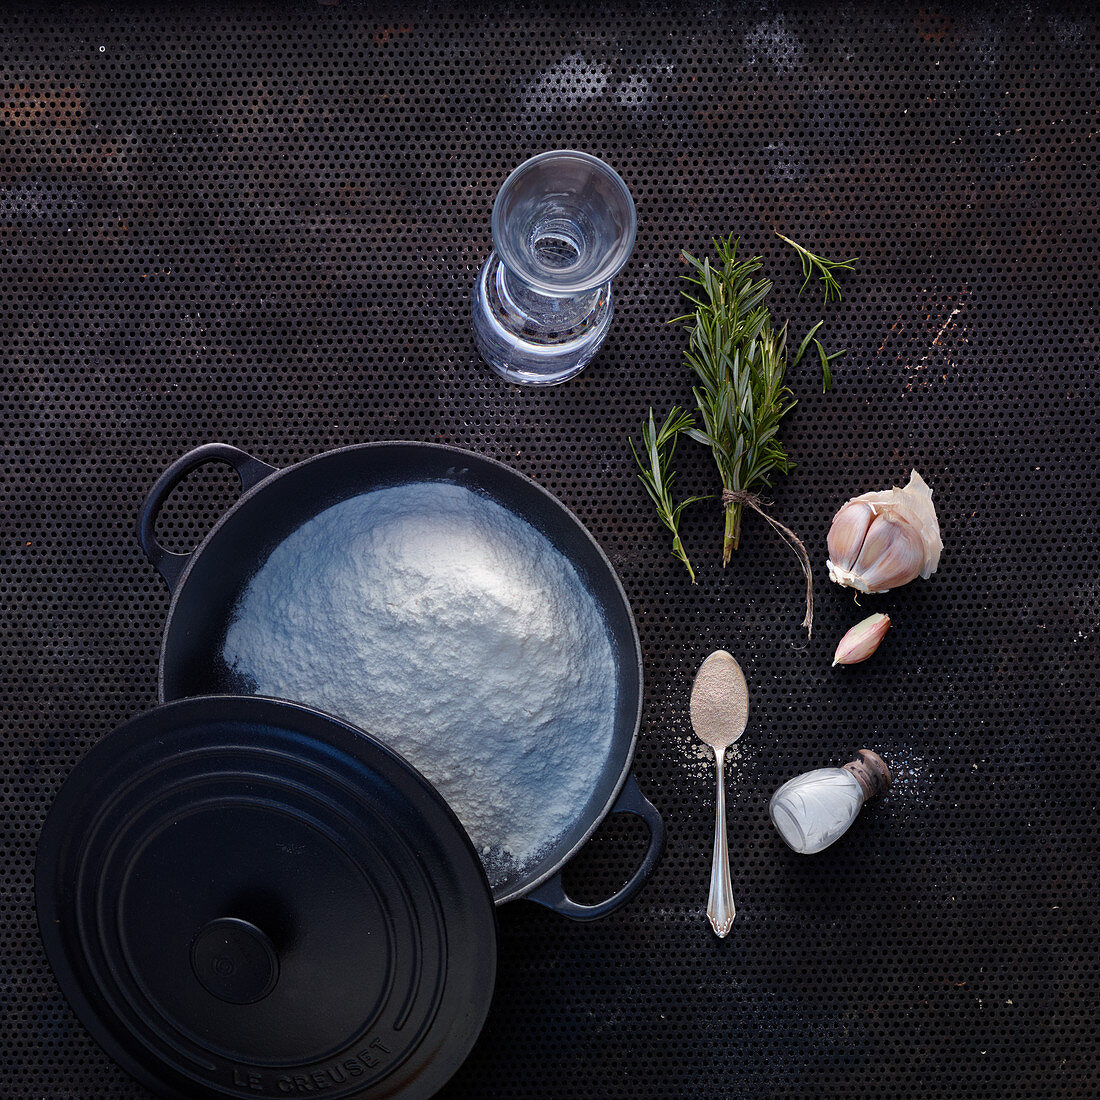 Baking ingredients and utensils for a No Knead bread